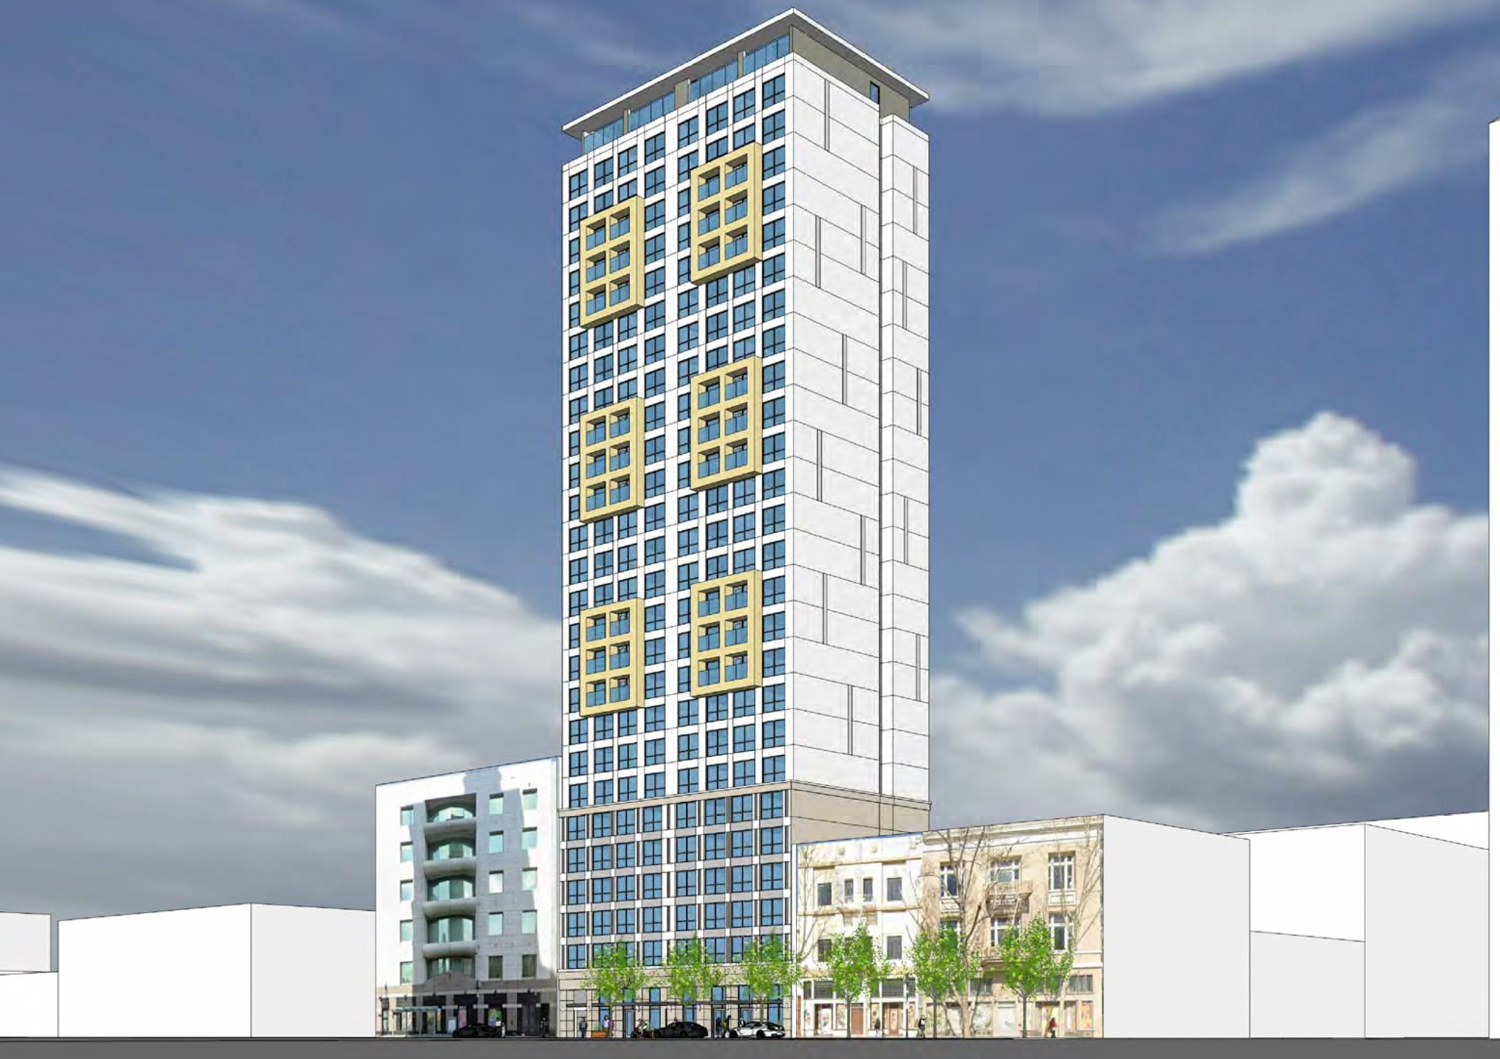 17 East Santa Clara Street tower, rendering by Anderson Architects